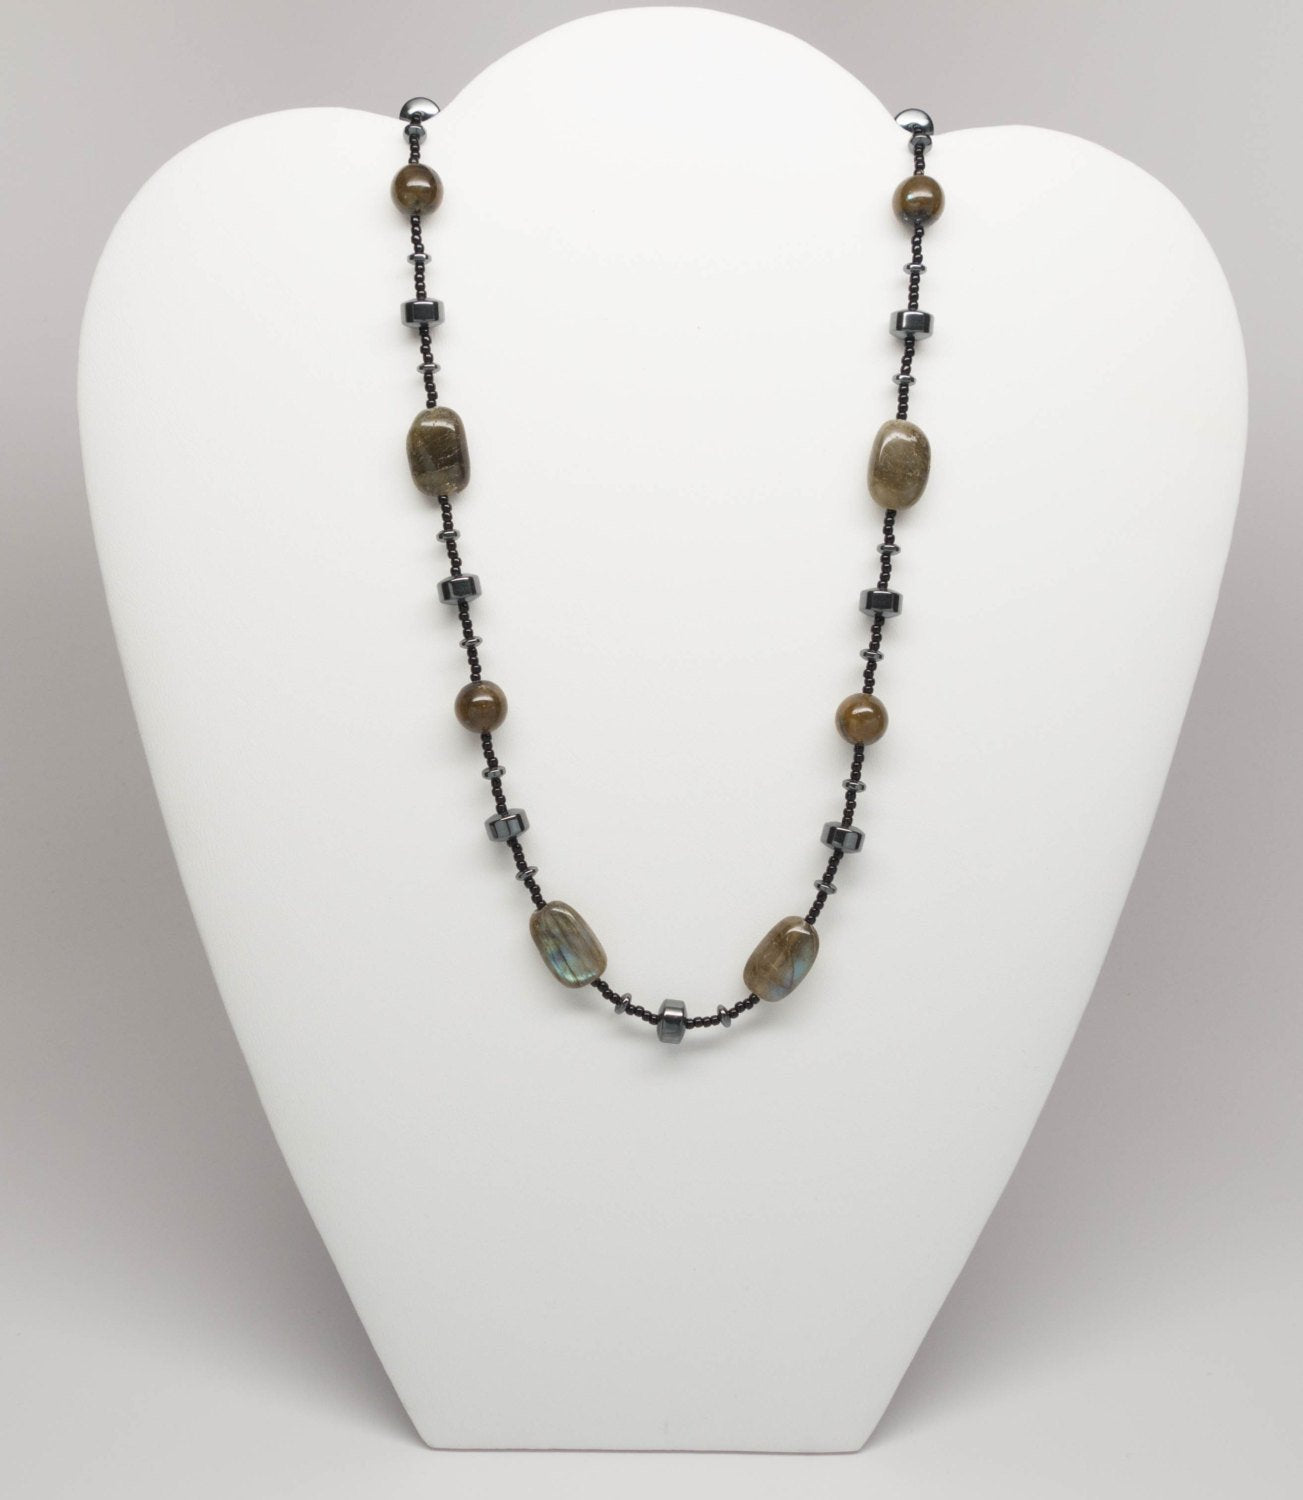 Labradorite and Hematite Necklace